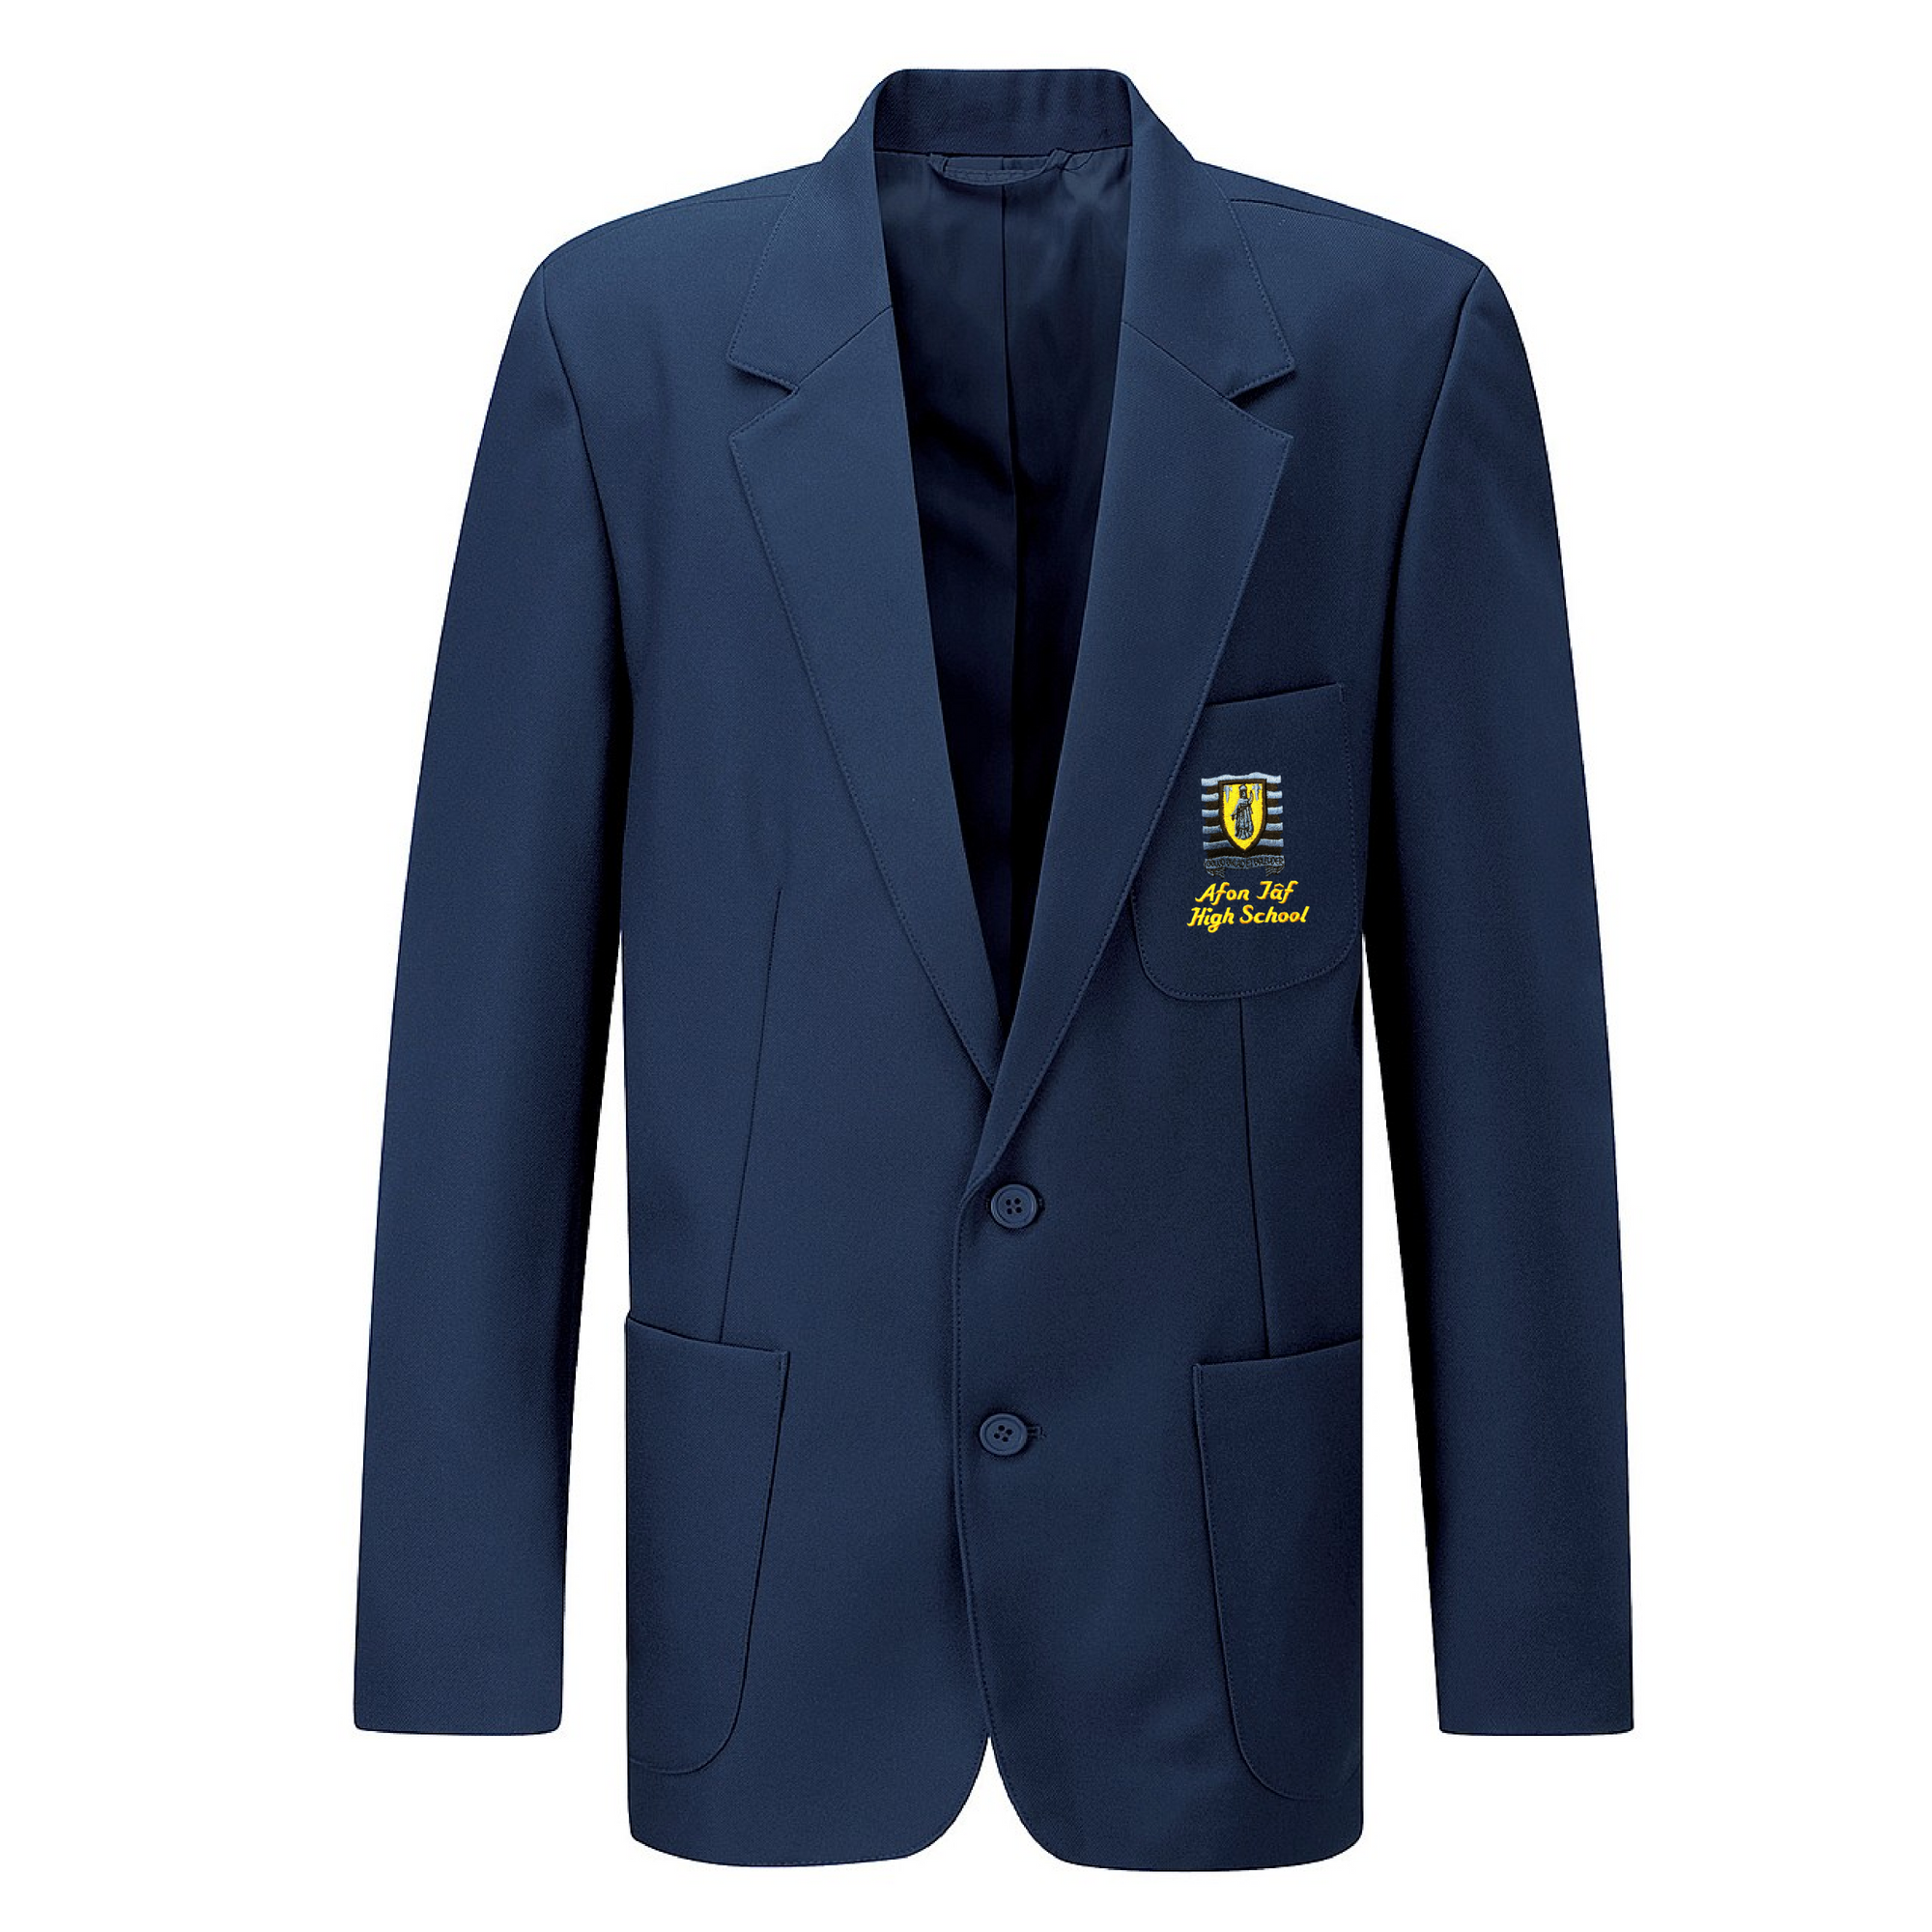 Afon Tâf High School Boys Navy Blazer